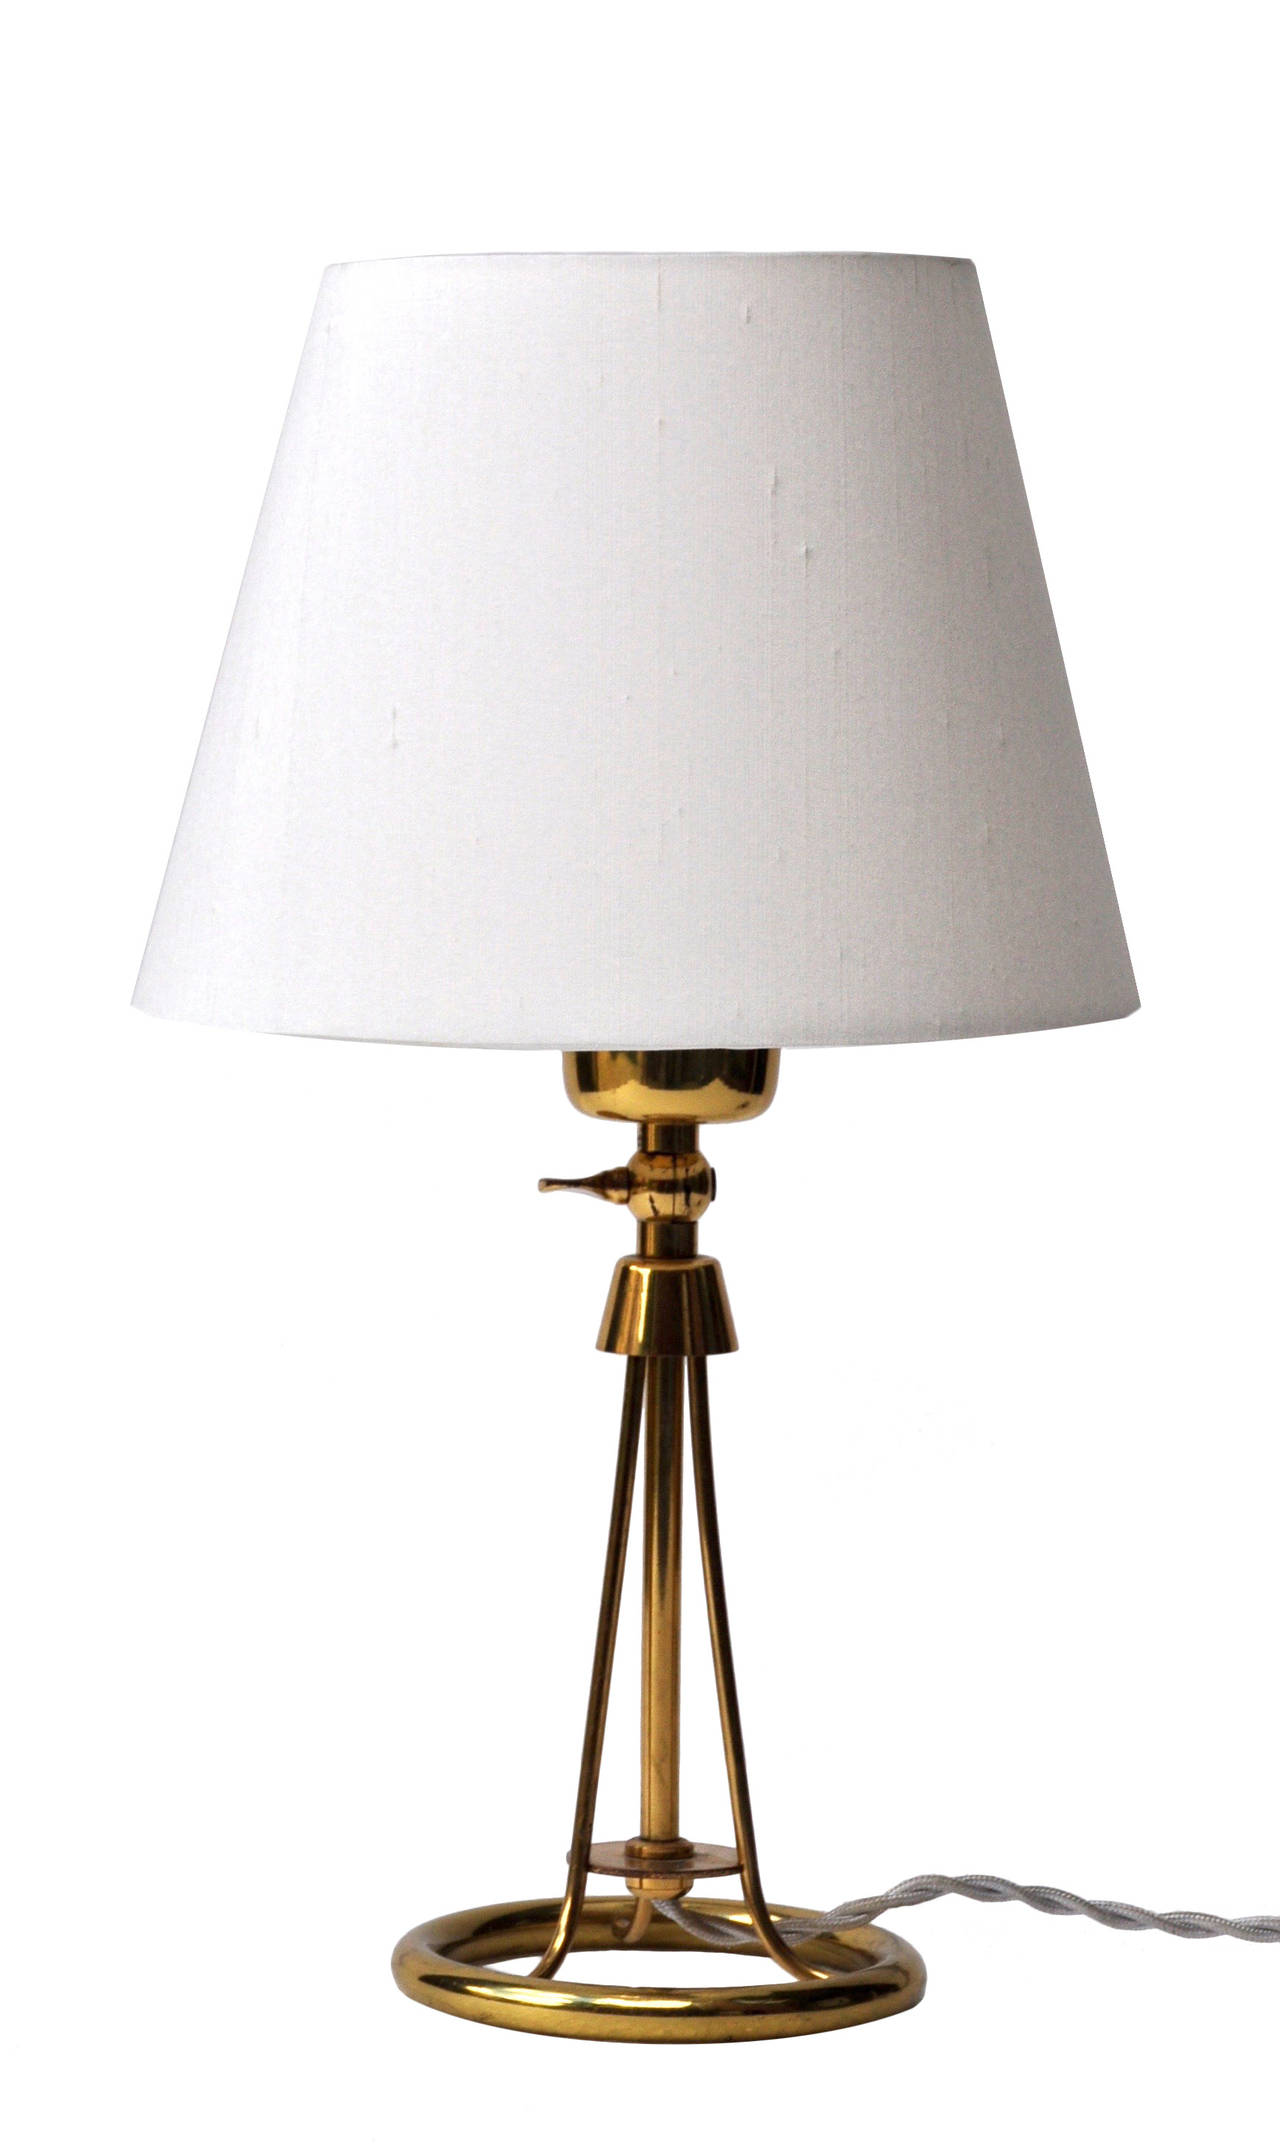 Pair of Alfred Muller Bedside Lamps Image